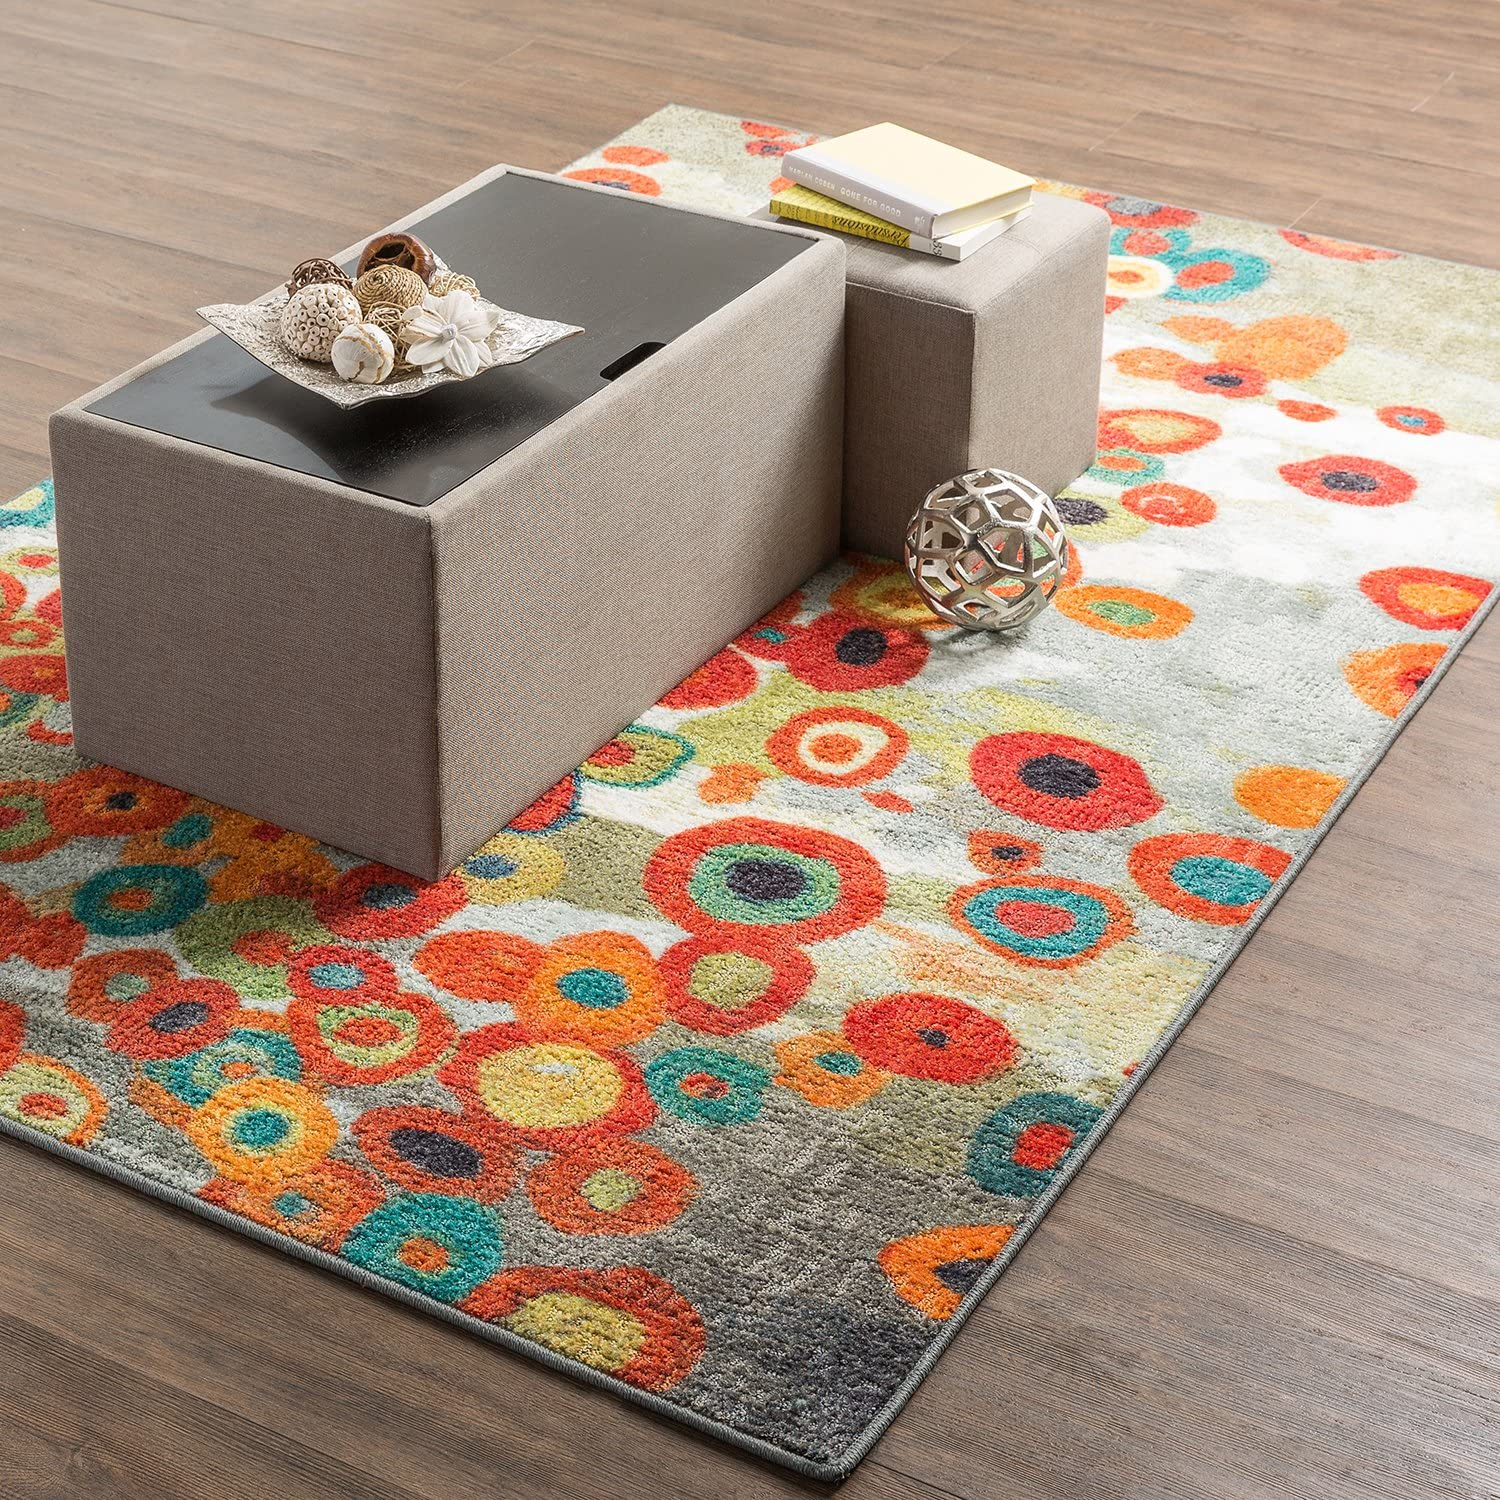 Mohawk Home Strata Tossed Floral Abstract Printed Area Rug, 5'x8', Multicolor